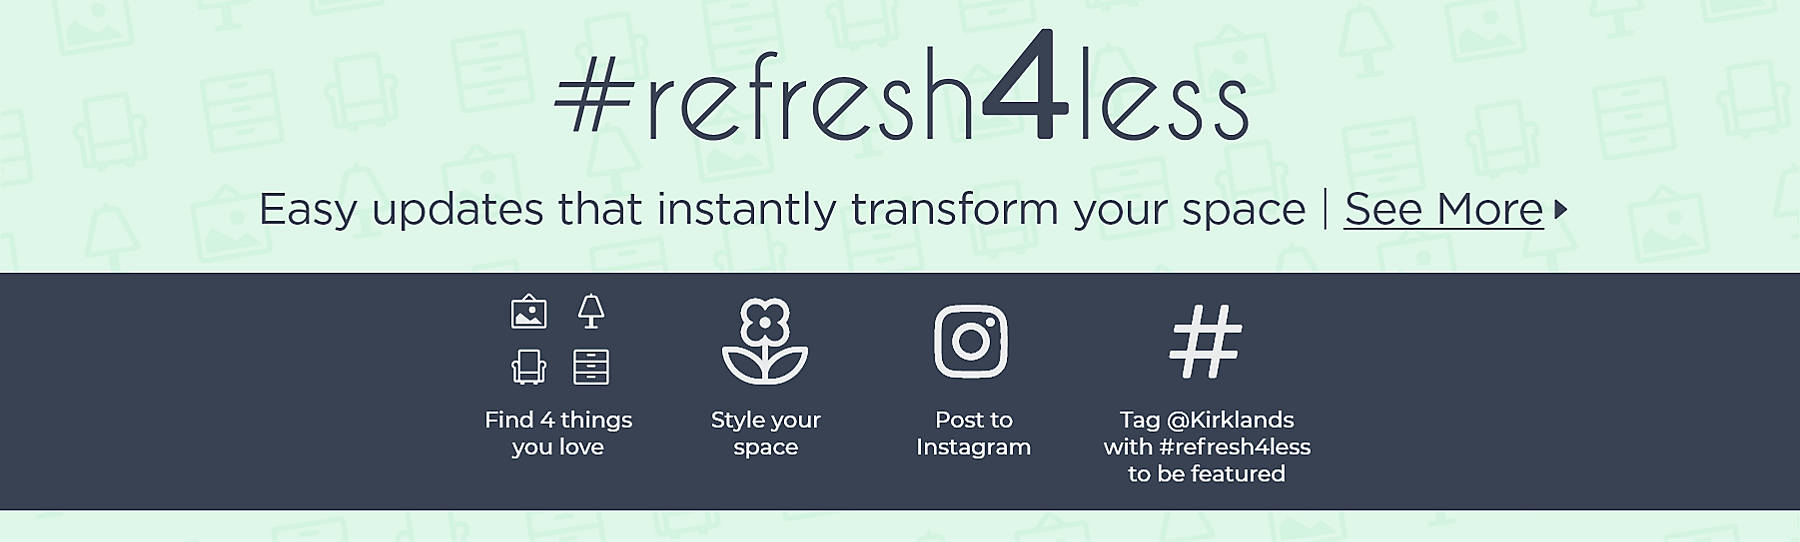 #refresh4less Easy updates that instantly transform your space. See More Find four things you love. Style your space. Post to Instagram. Tag @Kirklands with #refresh4less to be featured